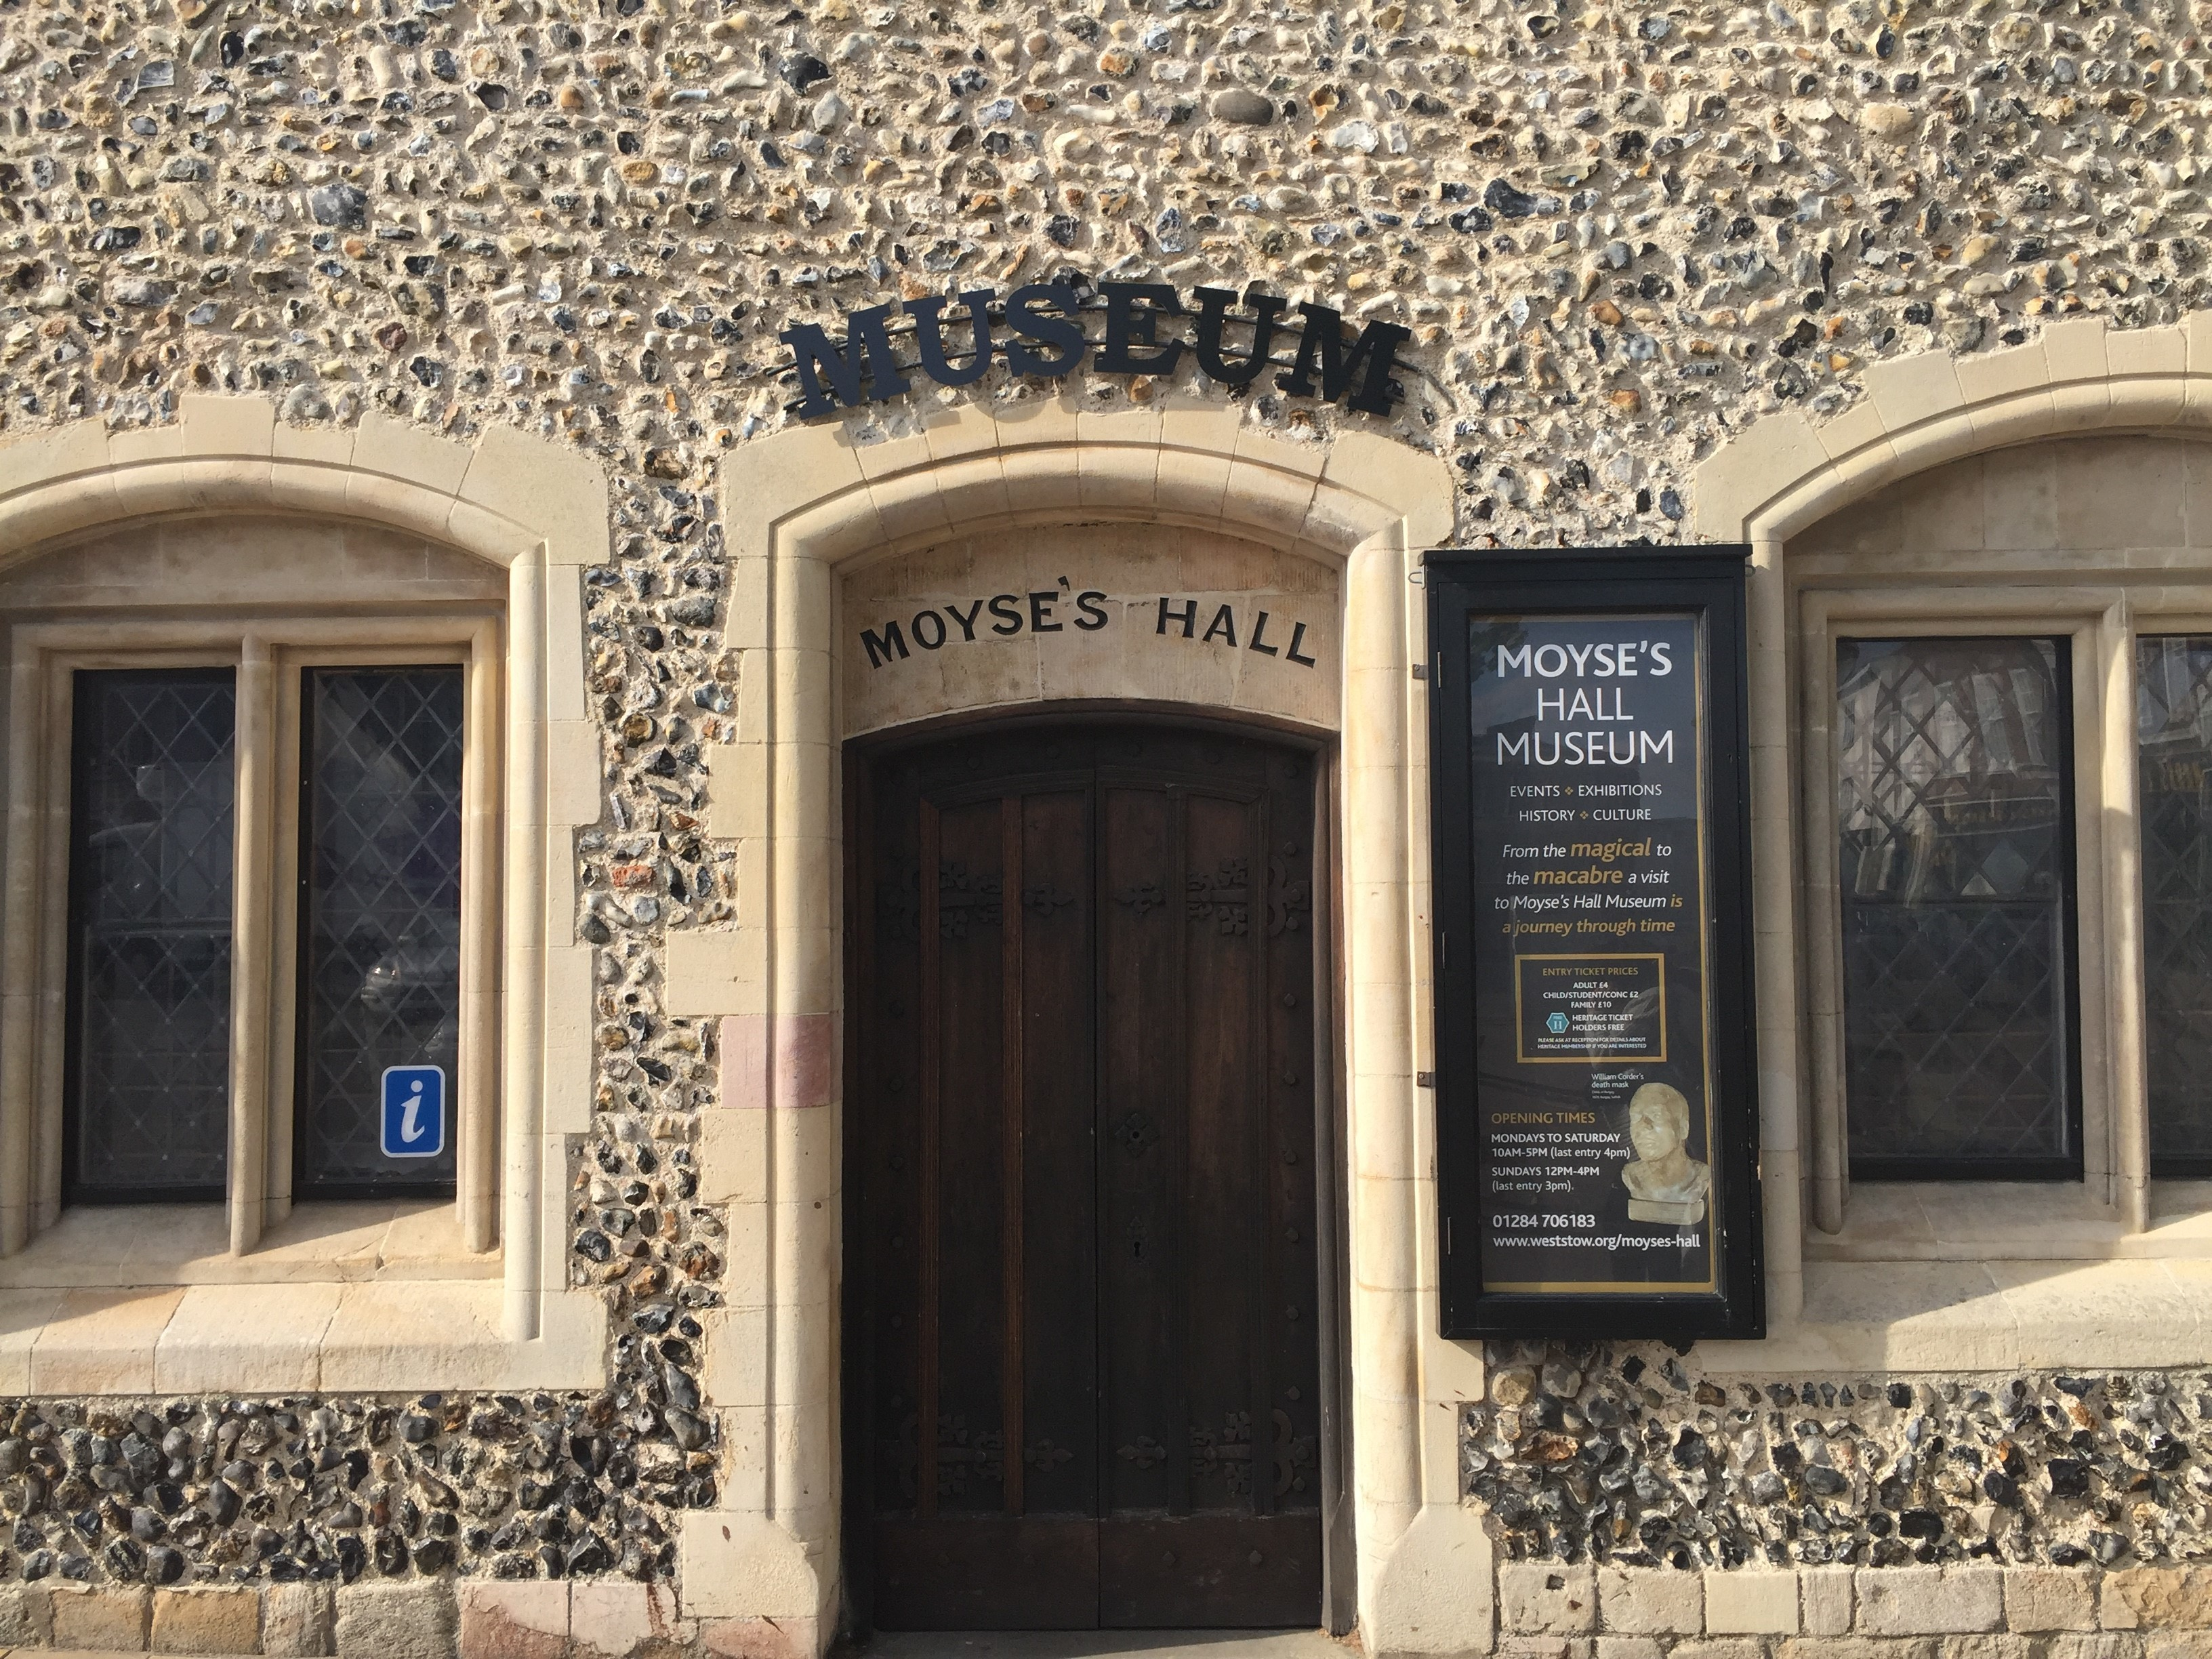 Mind the Gap Exhibition at Moyse's Hall Museum